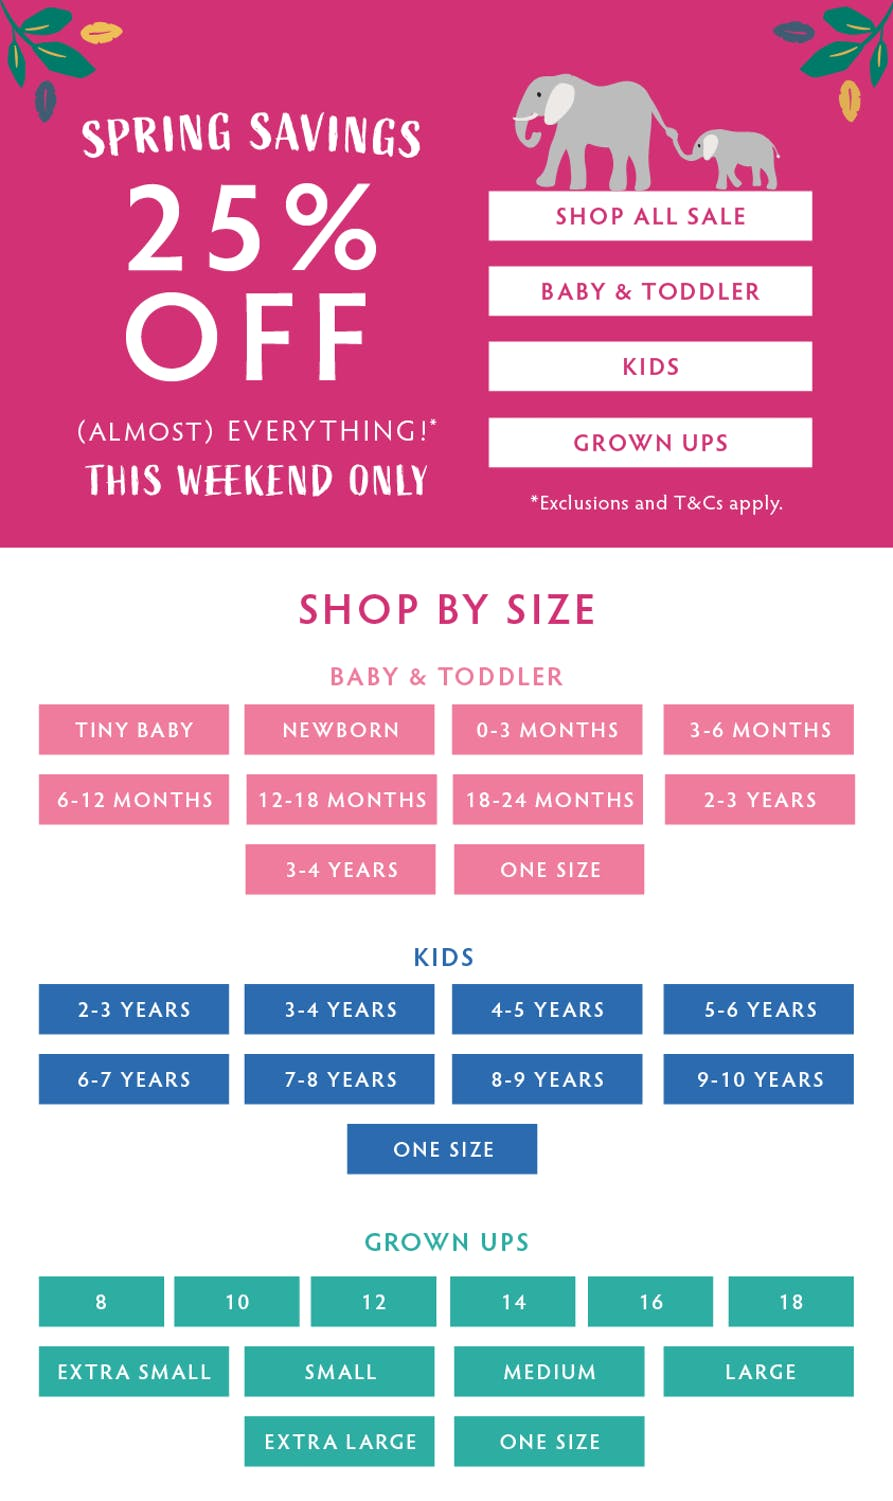 Spring Savings! 25% off (almost) everything this weekend only! Shop now